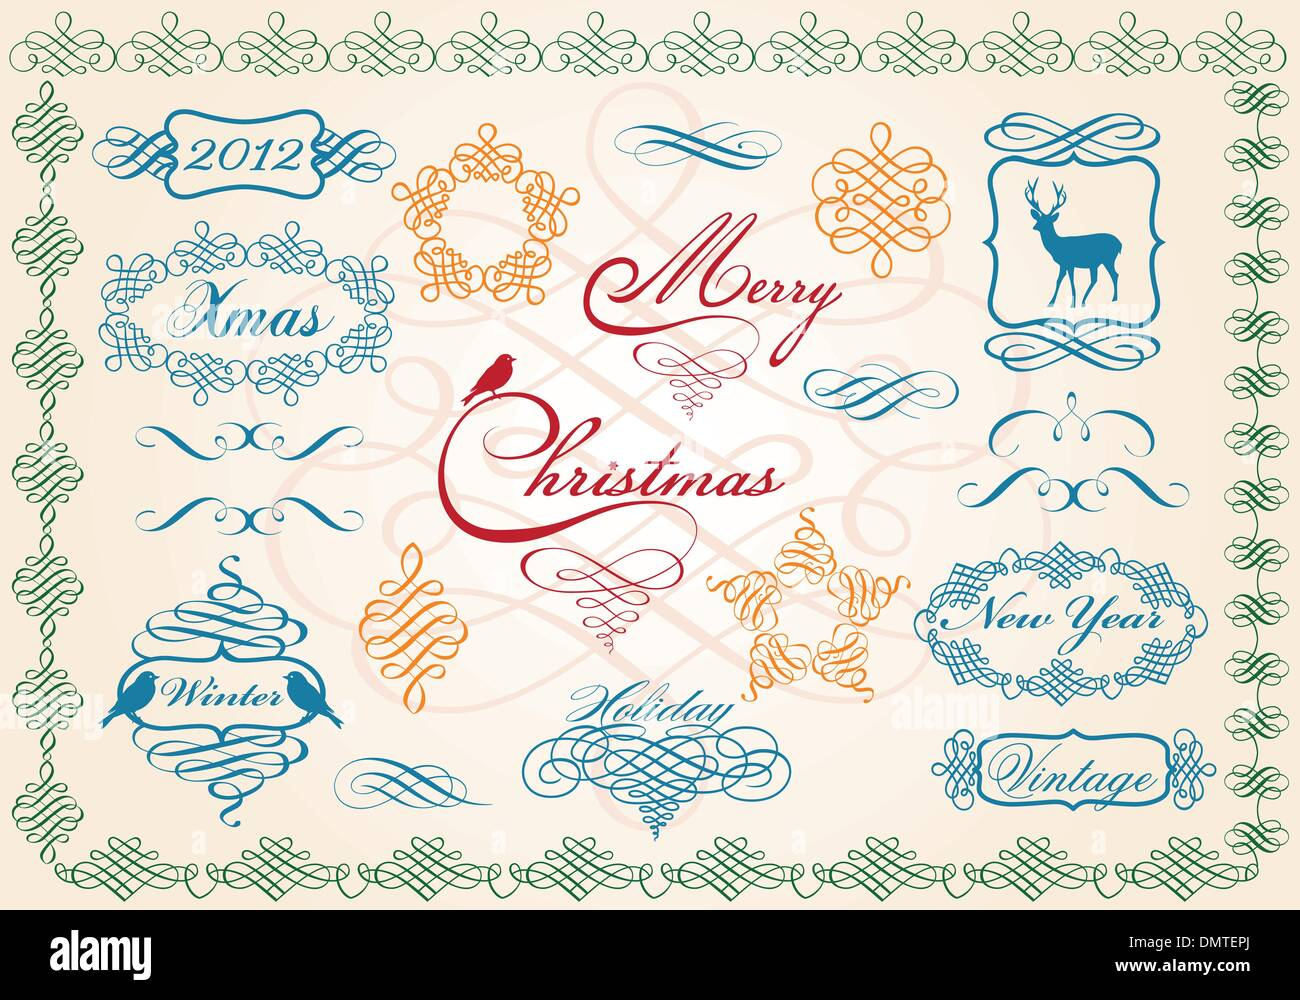 christmas frames and borders, vector - Stock Image